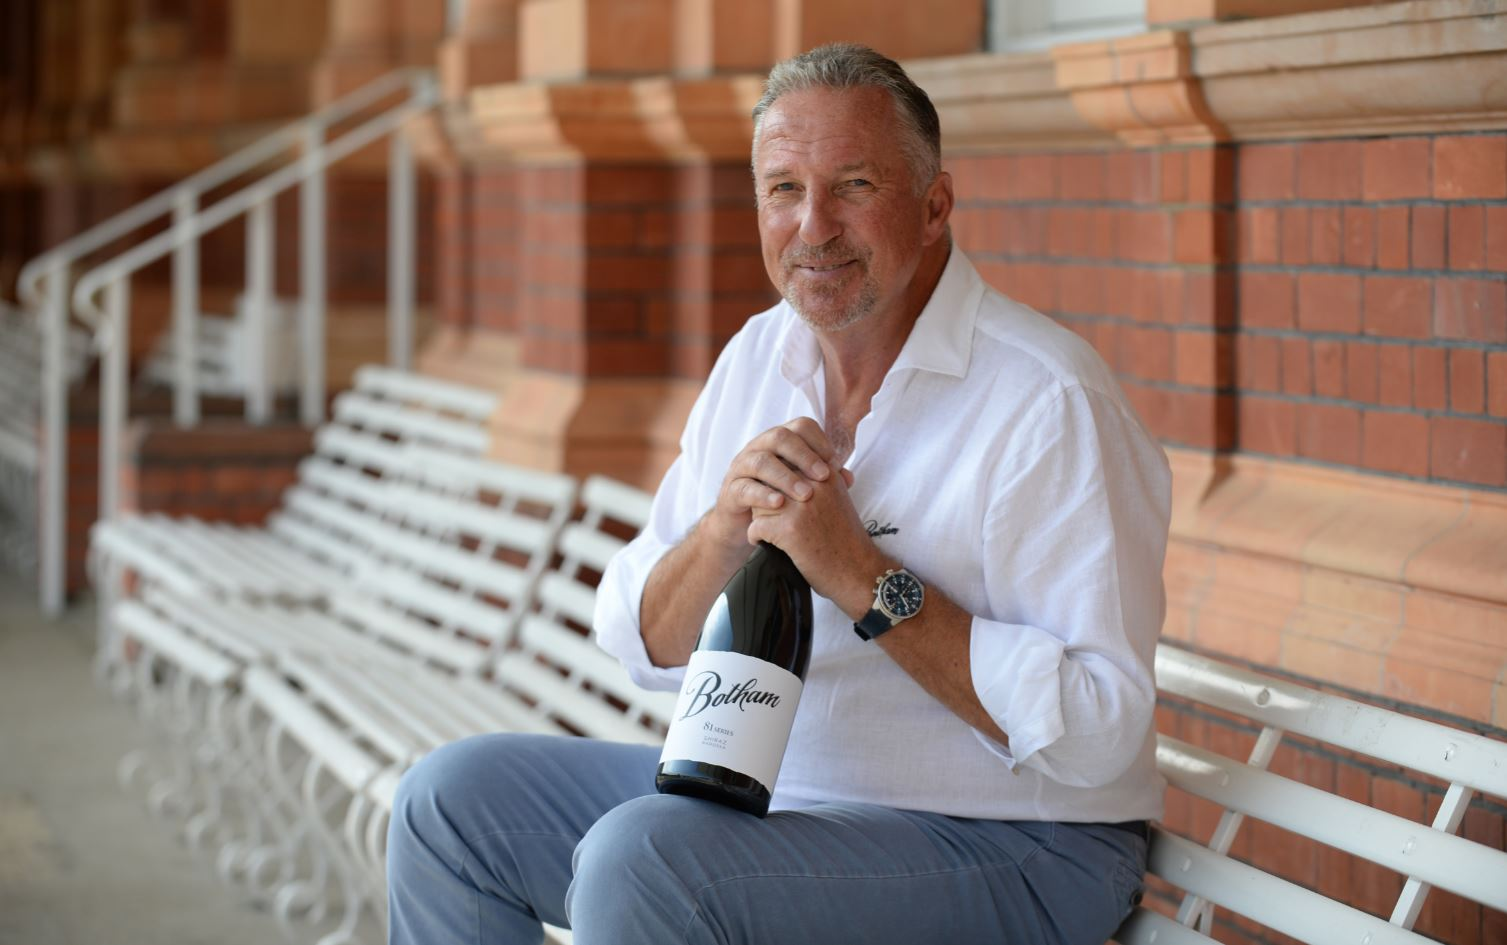 SIR IAN BOTHAM OBE EMBARKS ON EXCITING NEW VENTURE WITH PREMIUM WINE